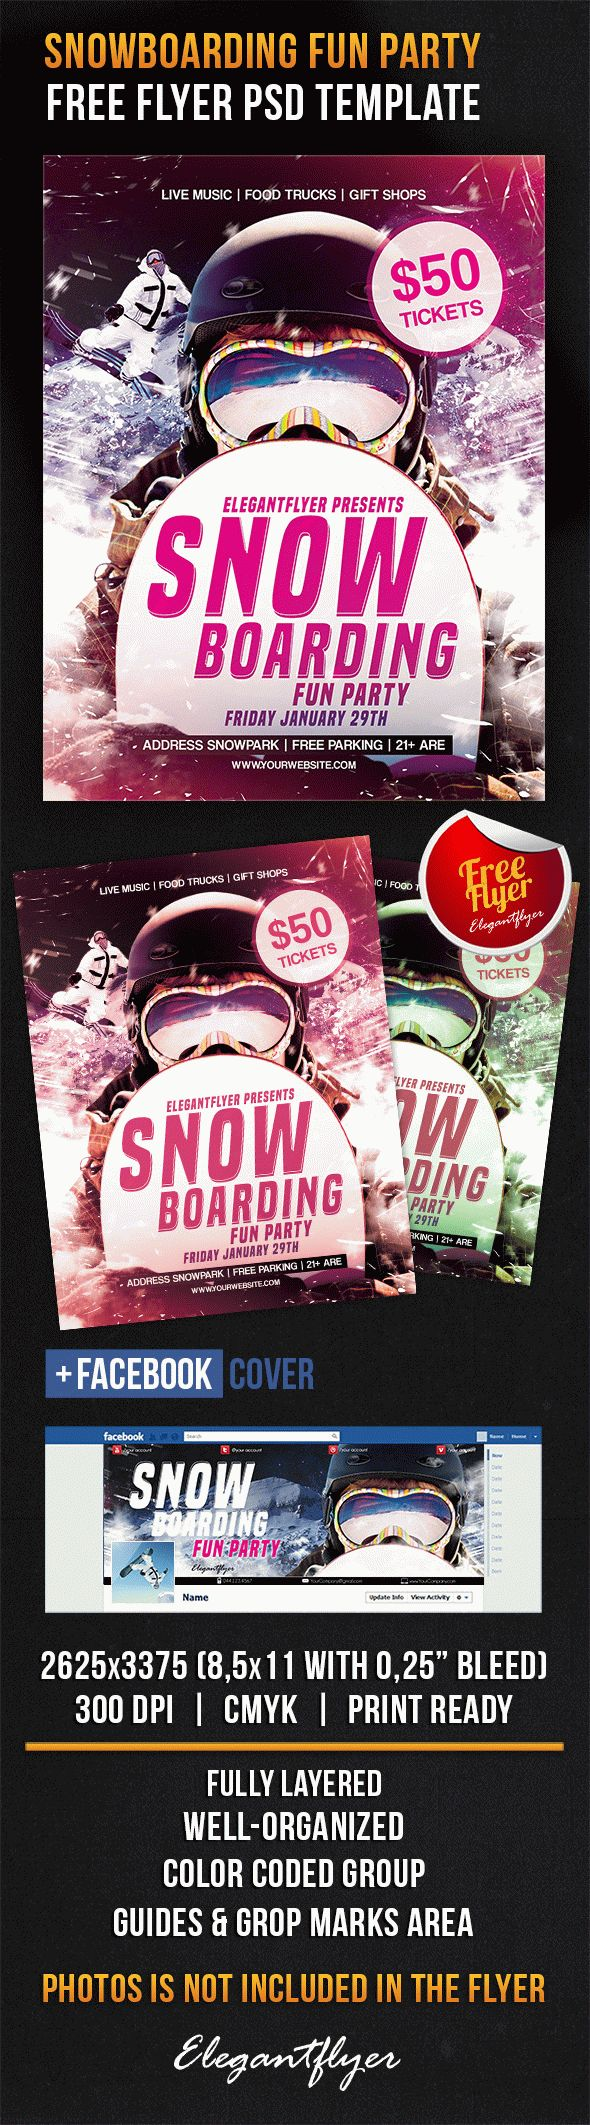 Snowboarding Fun Party – Free Flyer PSD Template